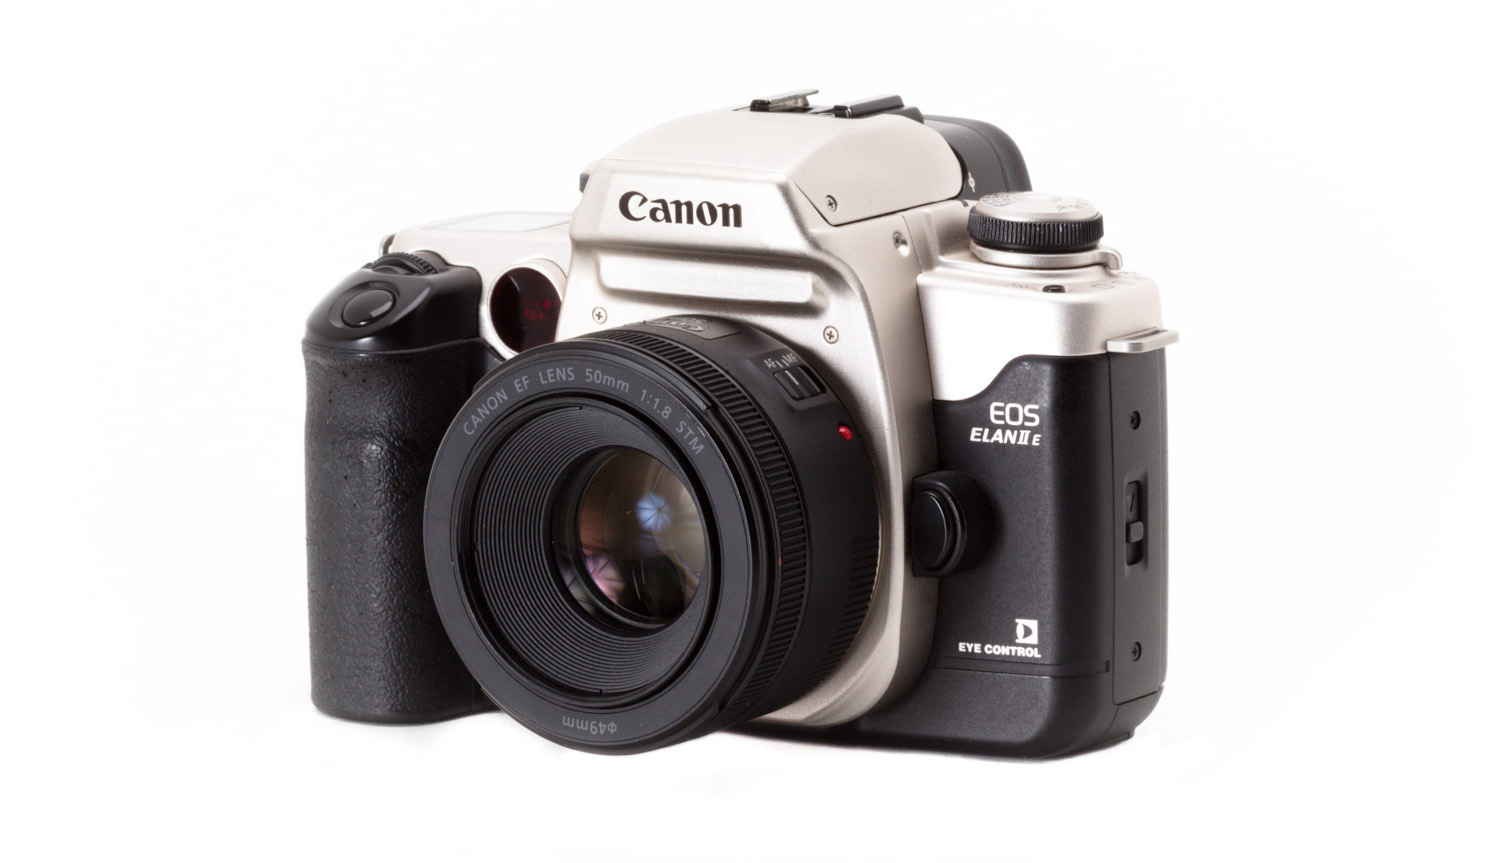 Looking Back Canons Eye Controlled Focus Digital Photography Review